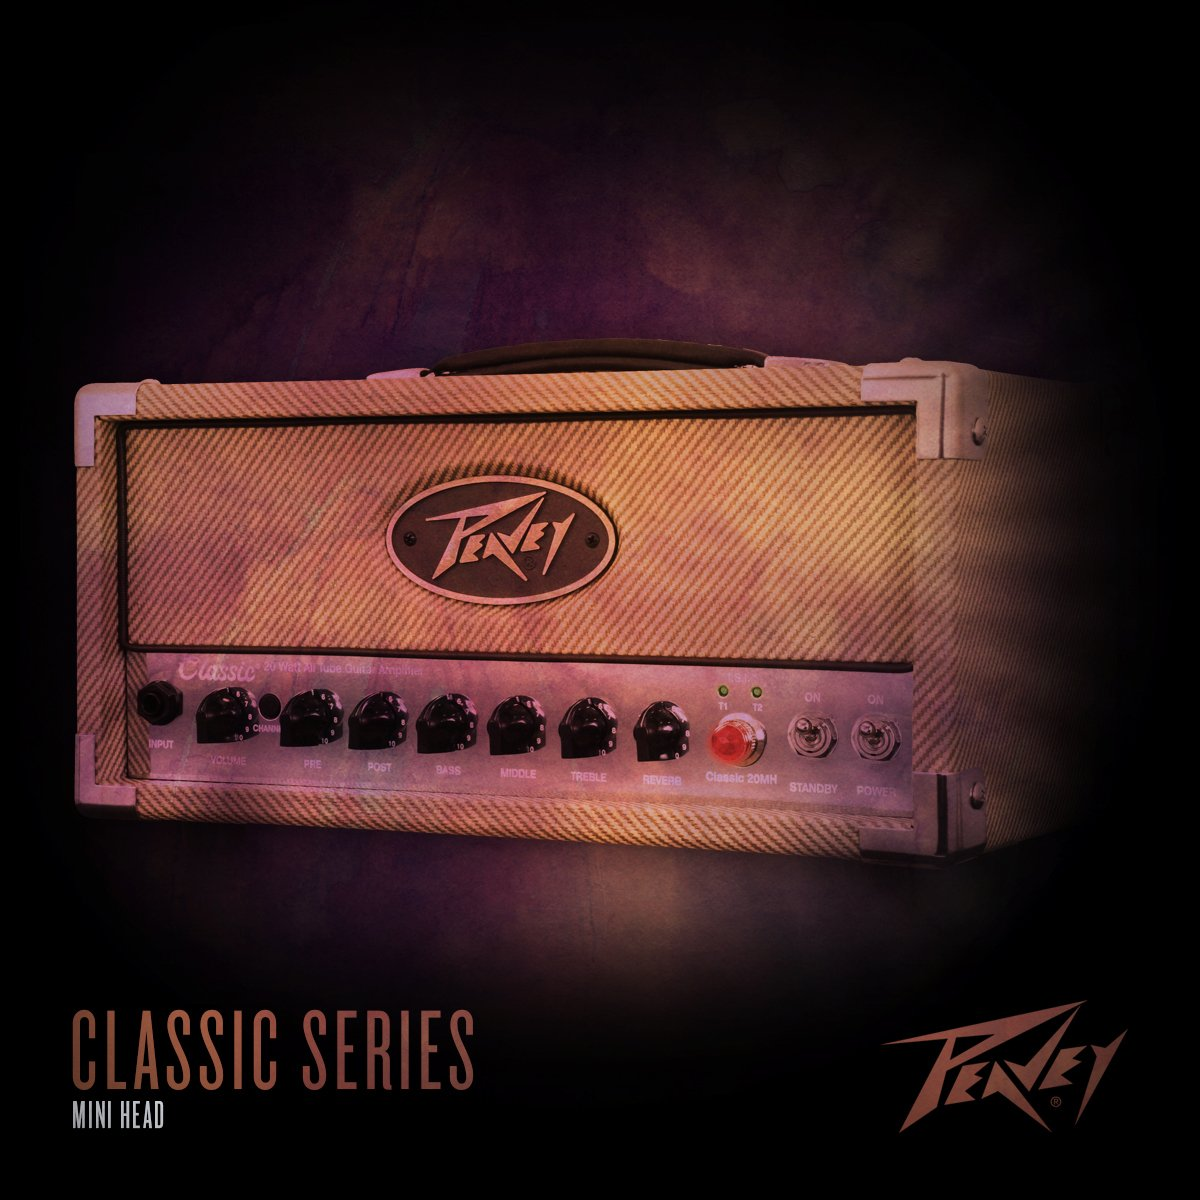 #Peavey Classics: A classic tone in a New World. #SoundIsOurStrength RT for a chance to win cool stuff from @Peavey! https://t.co/s9jzGDlOgB